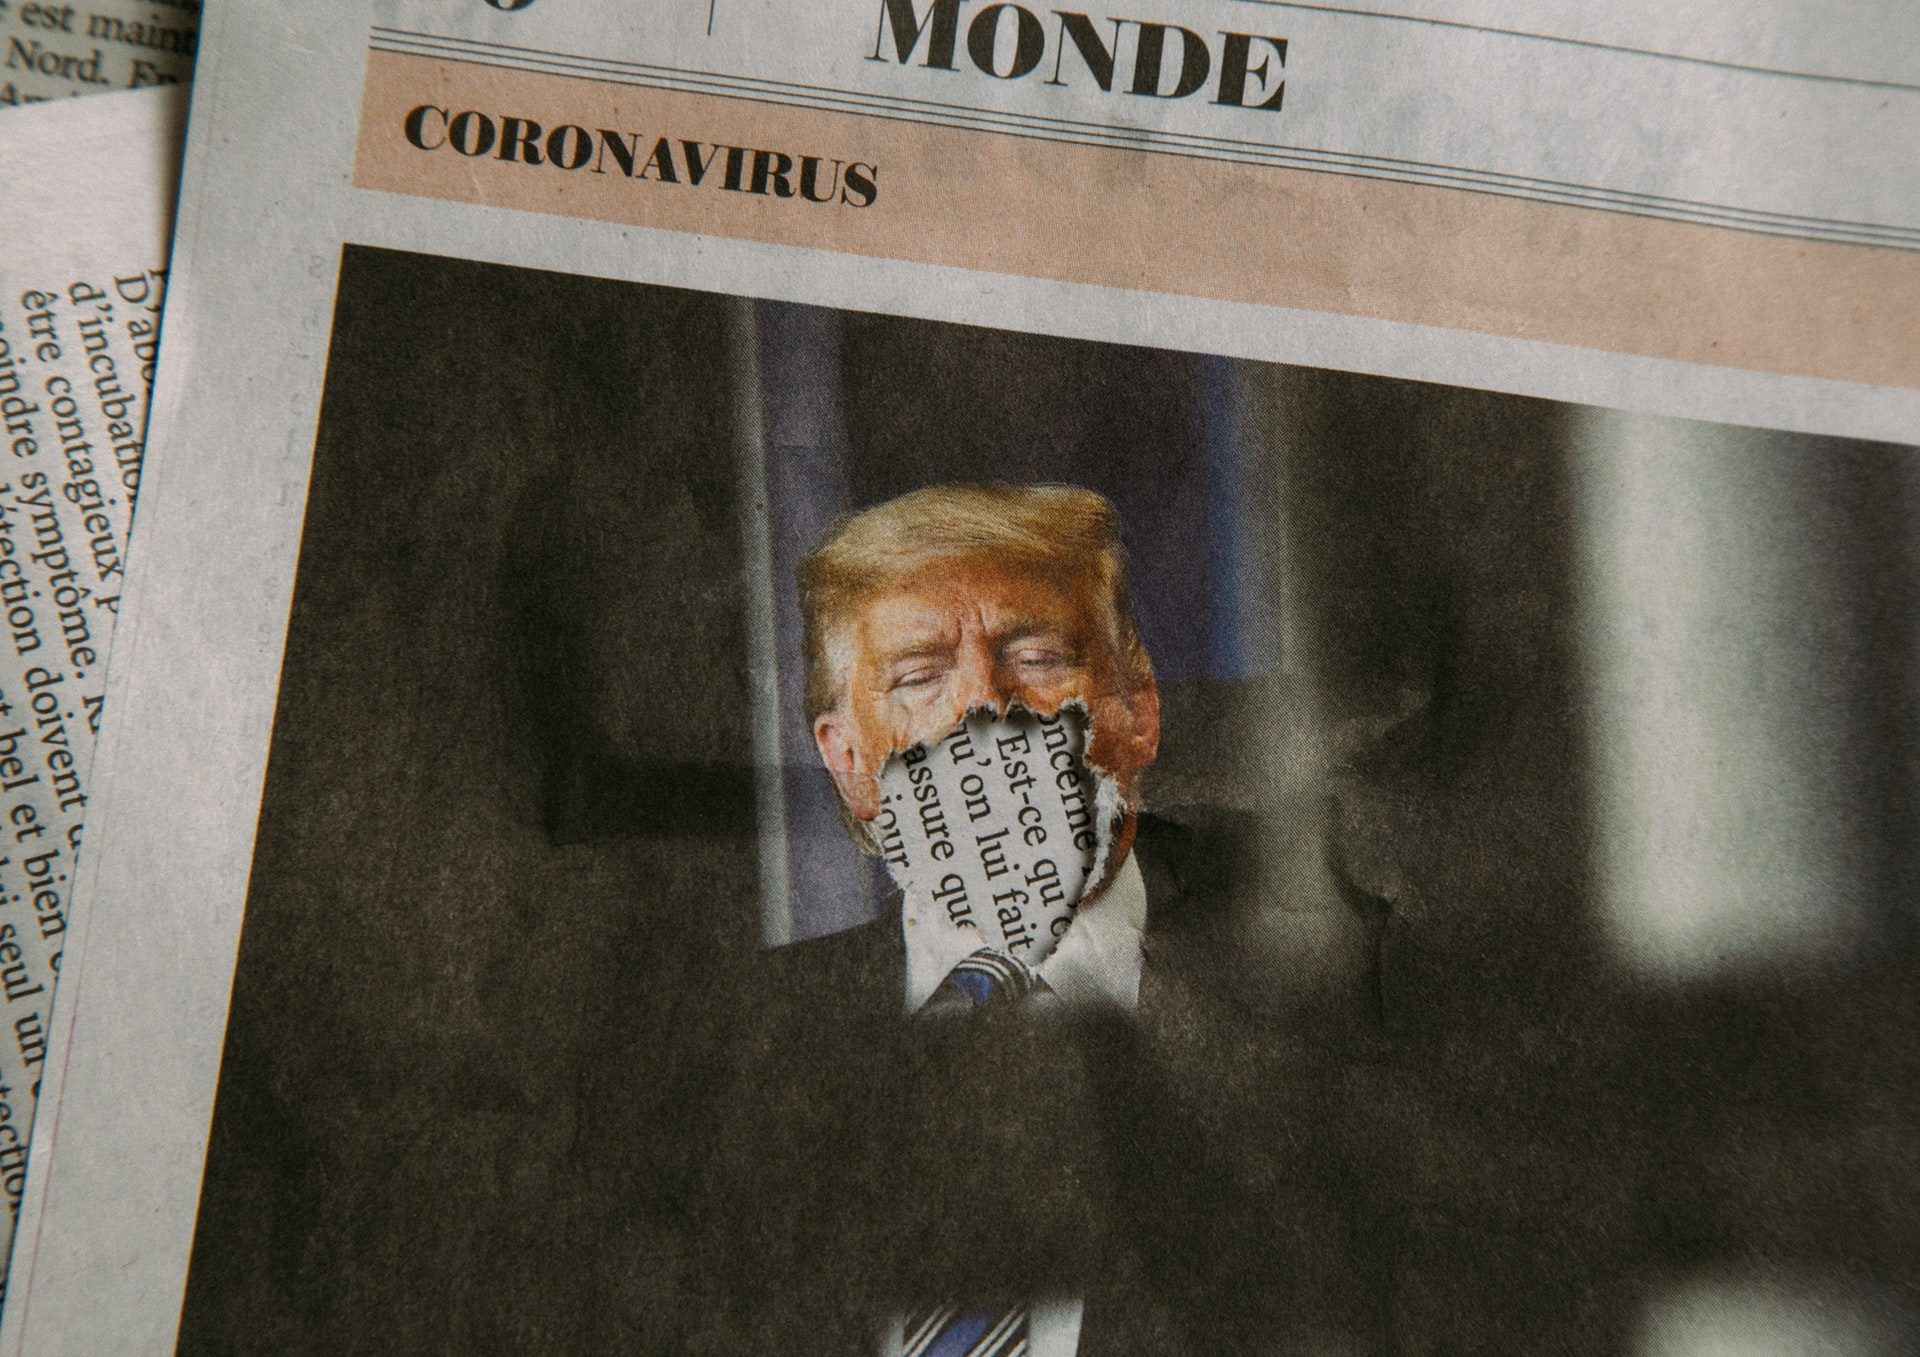 trump-featured-on-a-newspaper